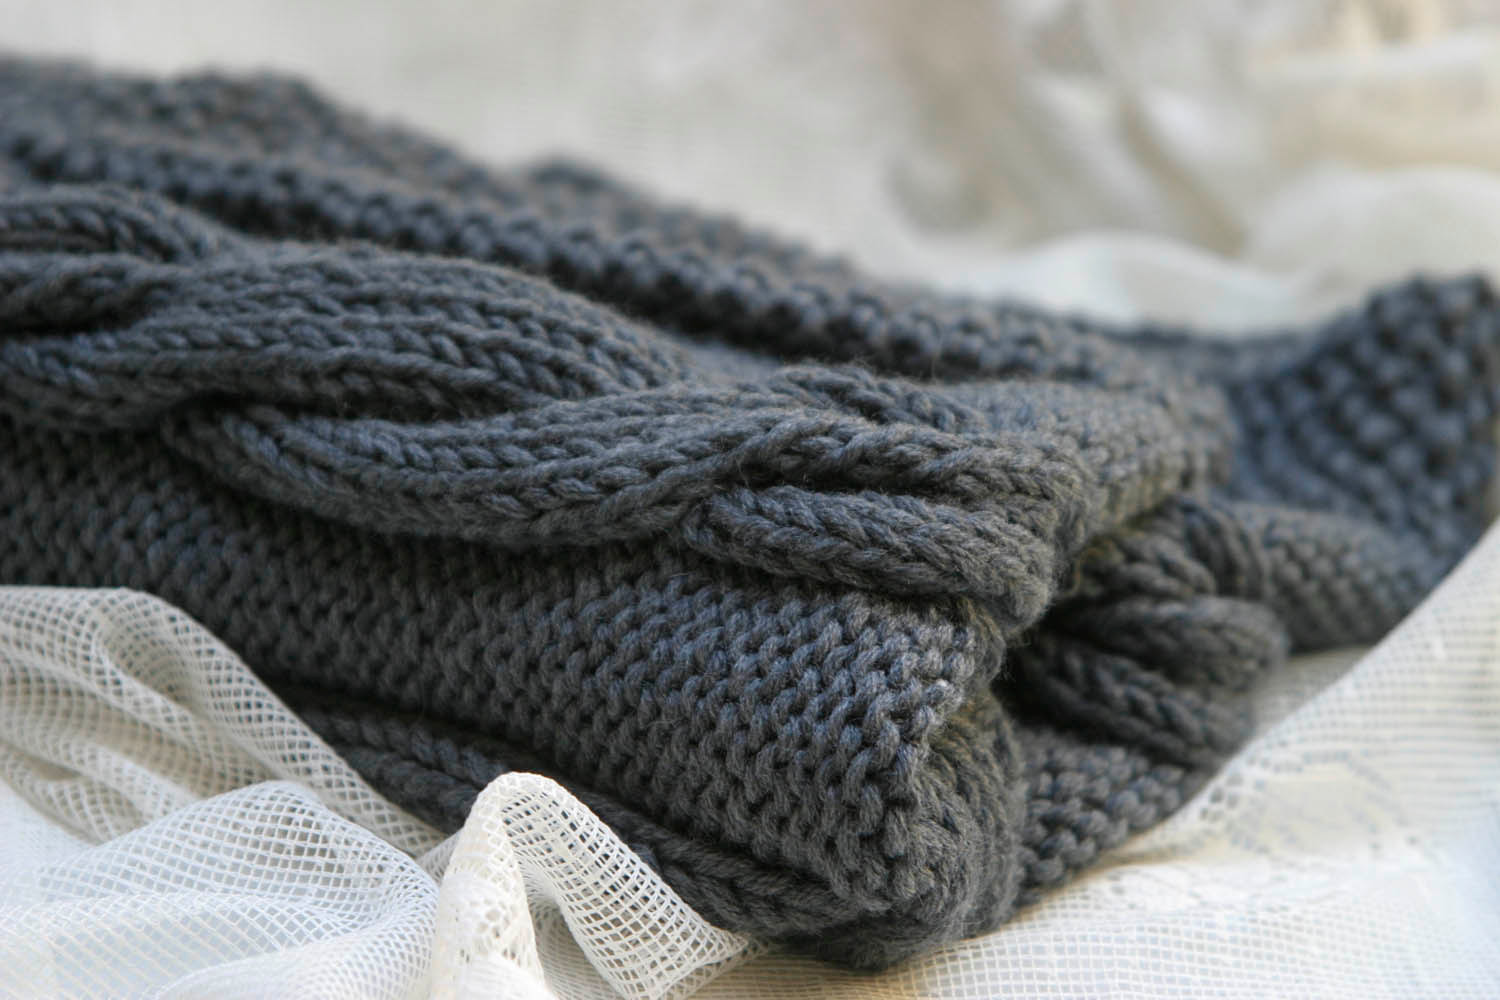 Cable Knit Blanket New Gray Cable Knit Baby Blanket Of Incredible 49 Pictures Cable Knit Blanket